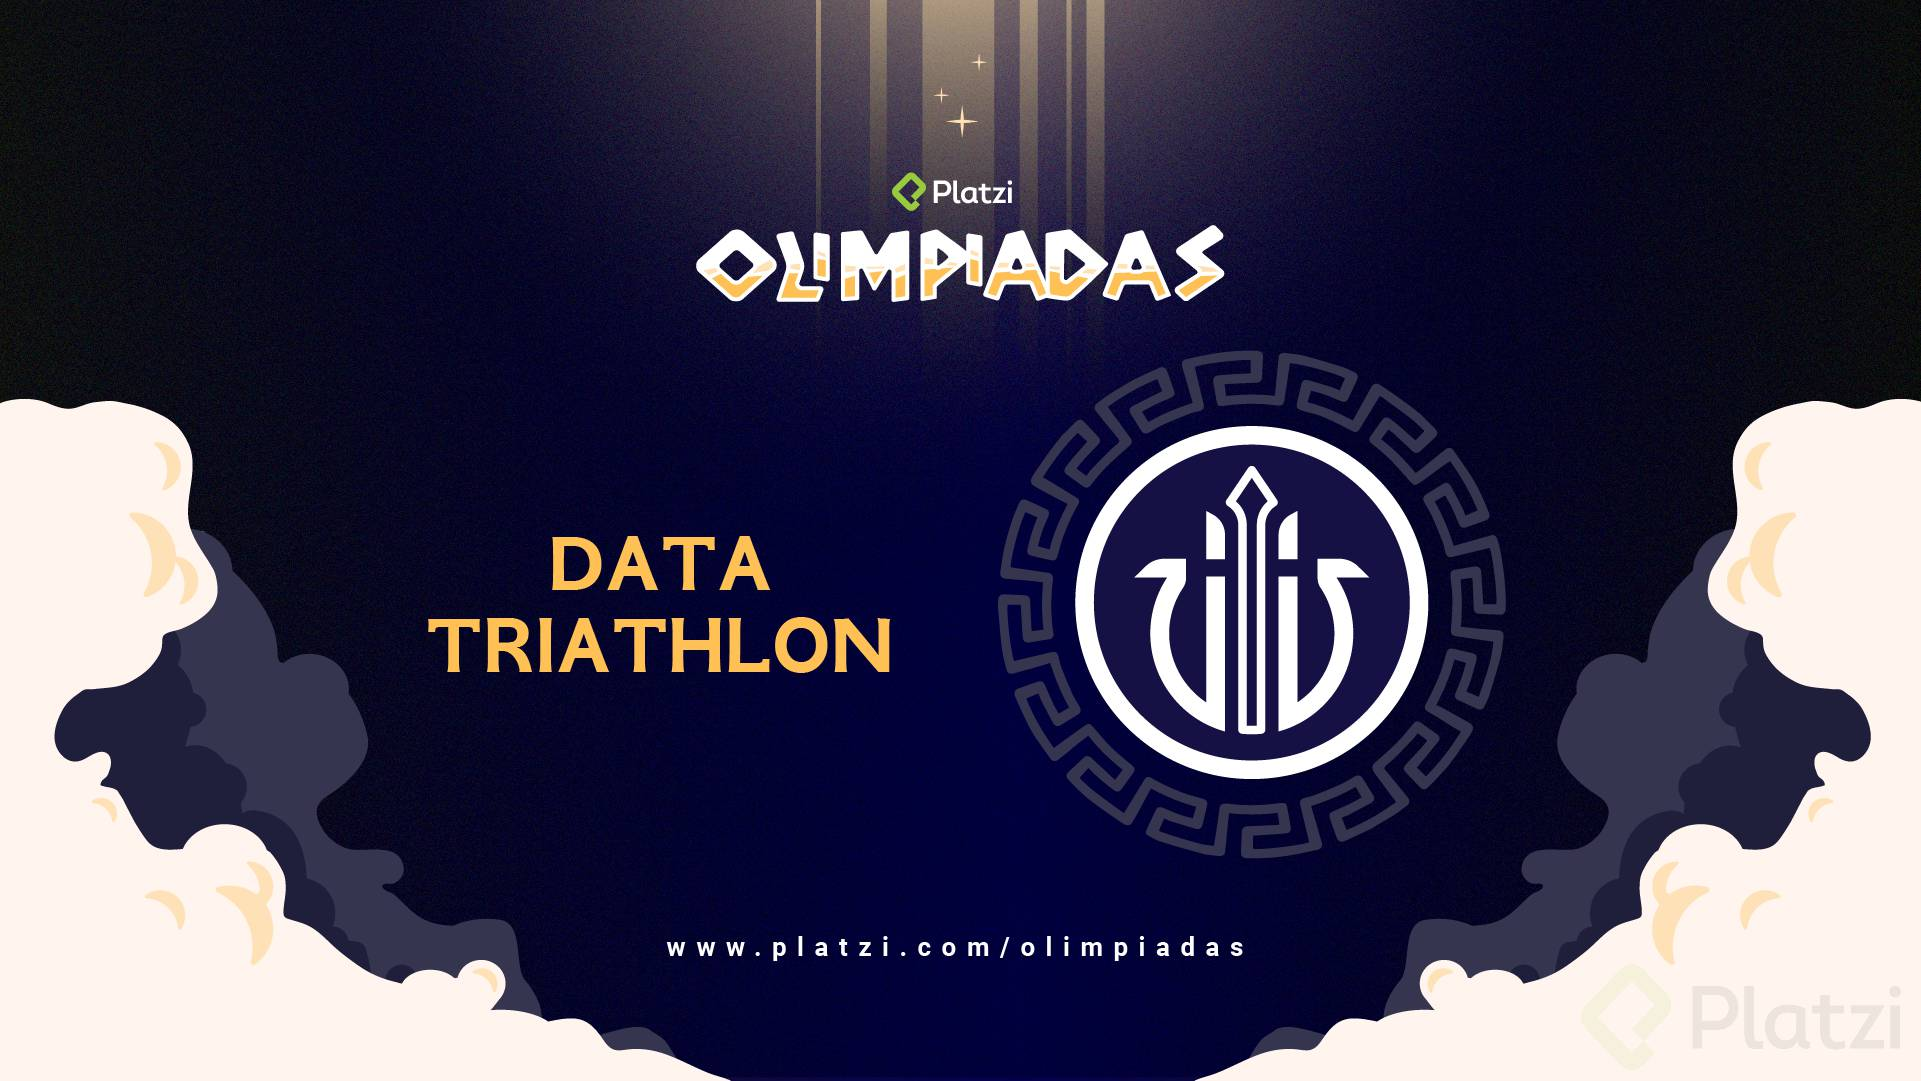 Olimpiadas_Data_Triathlon_Wallpaper.png